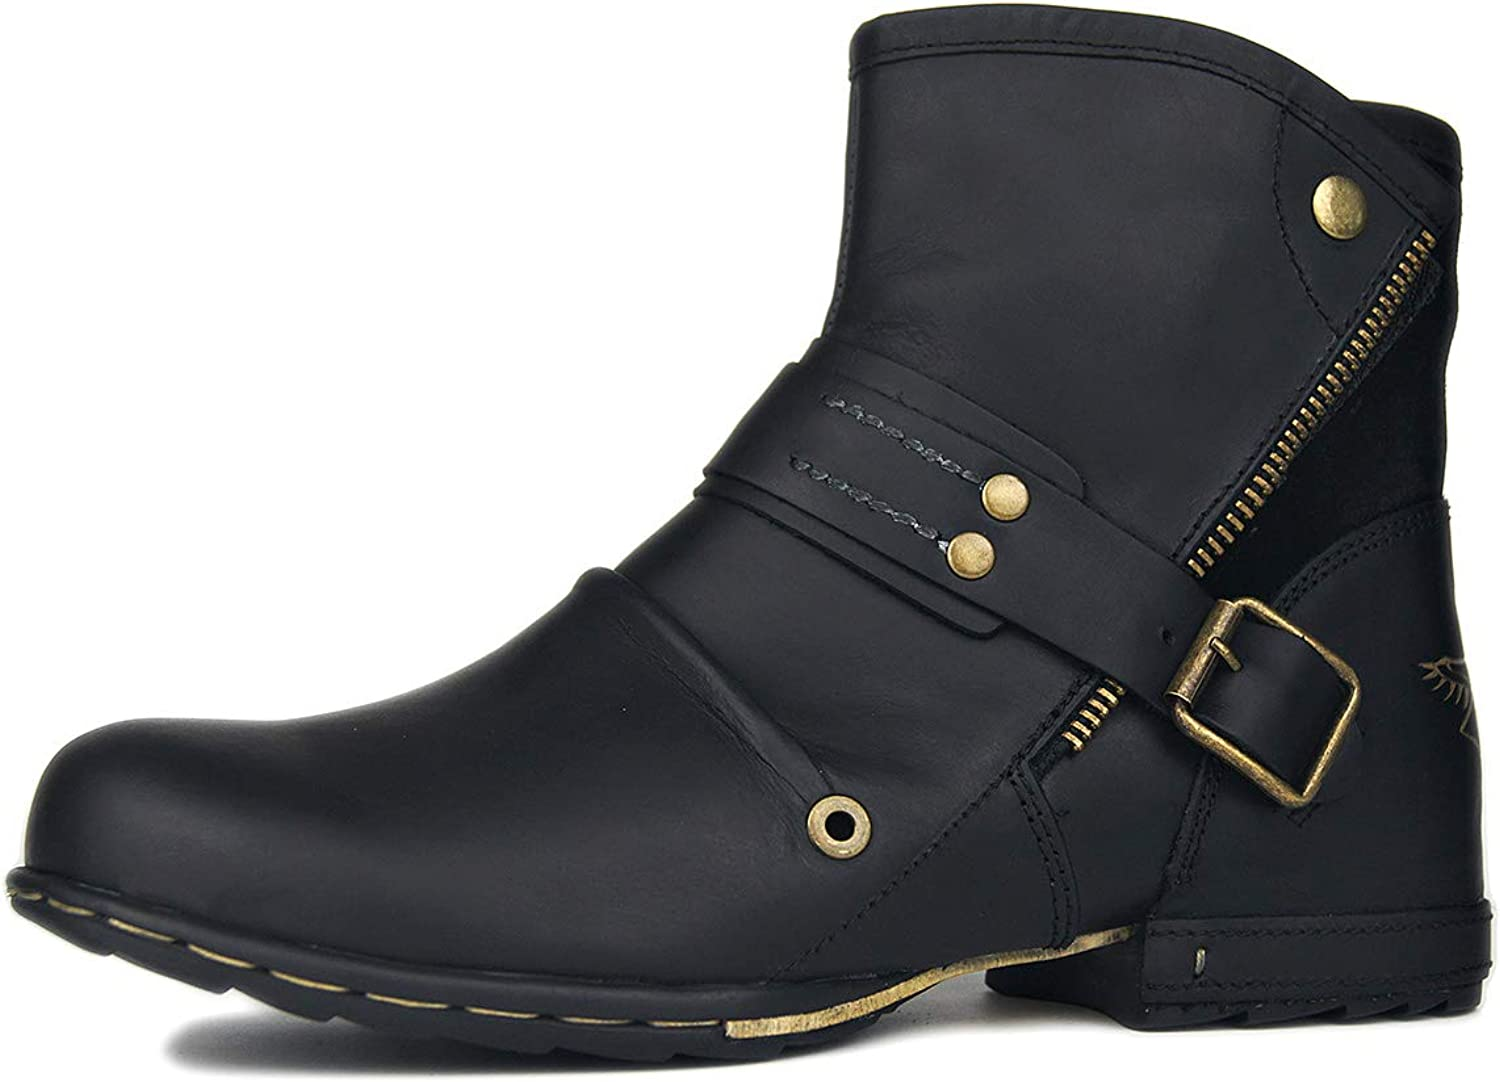 OTTO ZONE Motorcycle Zipper Retro Low Boots Men Leather Chukka Mechanic Western Boots Space Slip On shoes OZ-5008-7